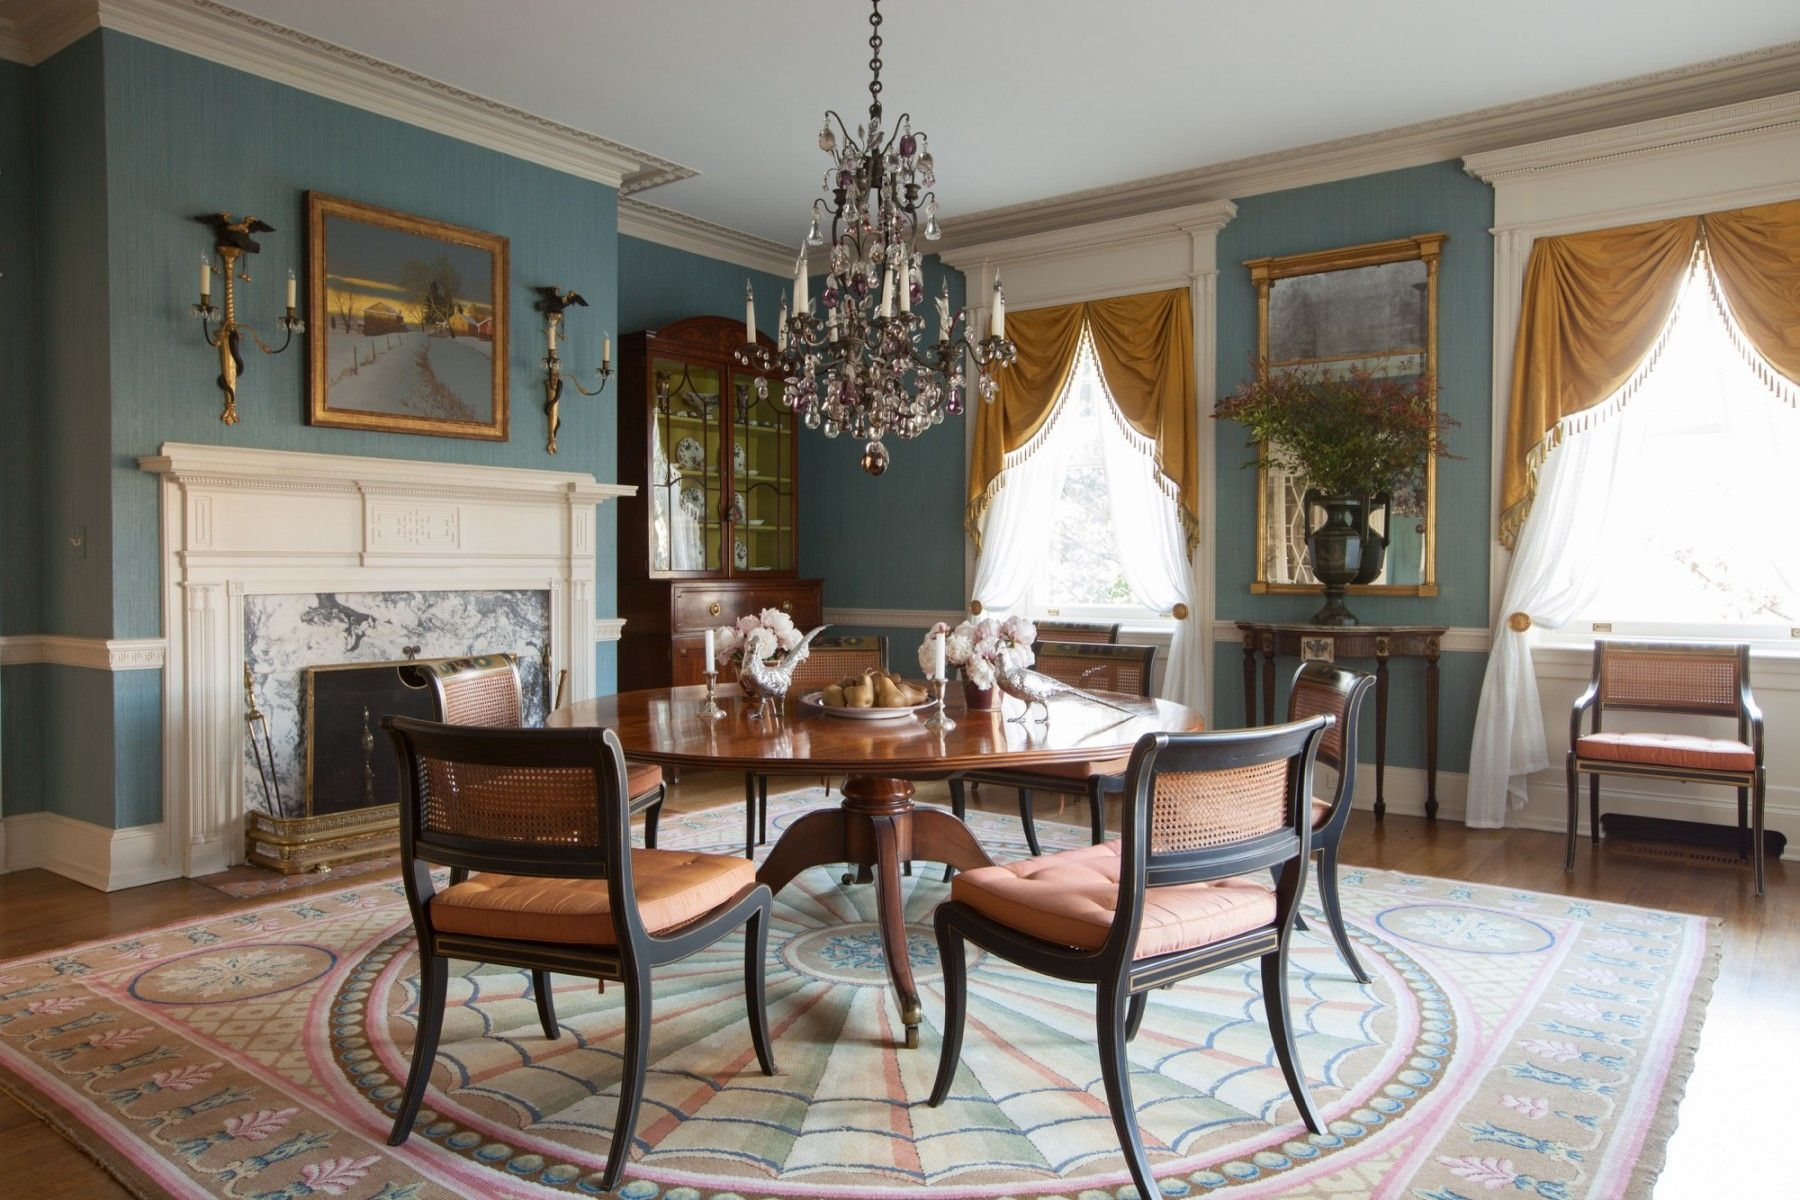 Delaware House Brockschmidt And Coleman Dining Room Fireplace Chic Dining Room Stylish Dining Room